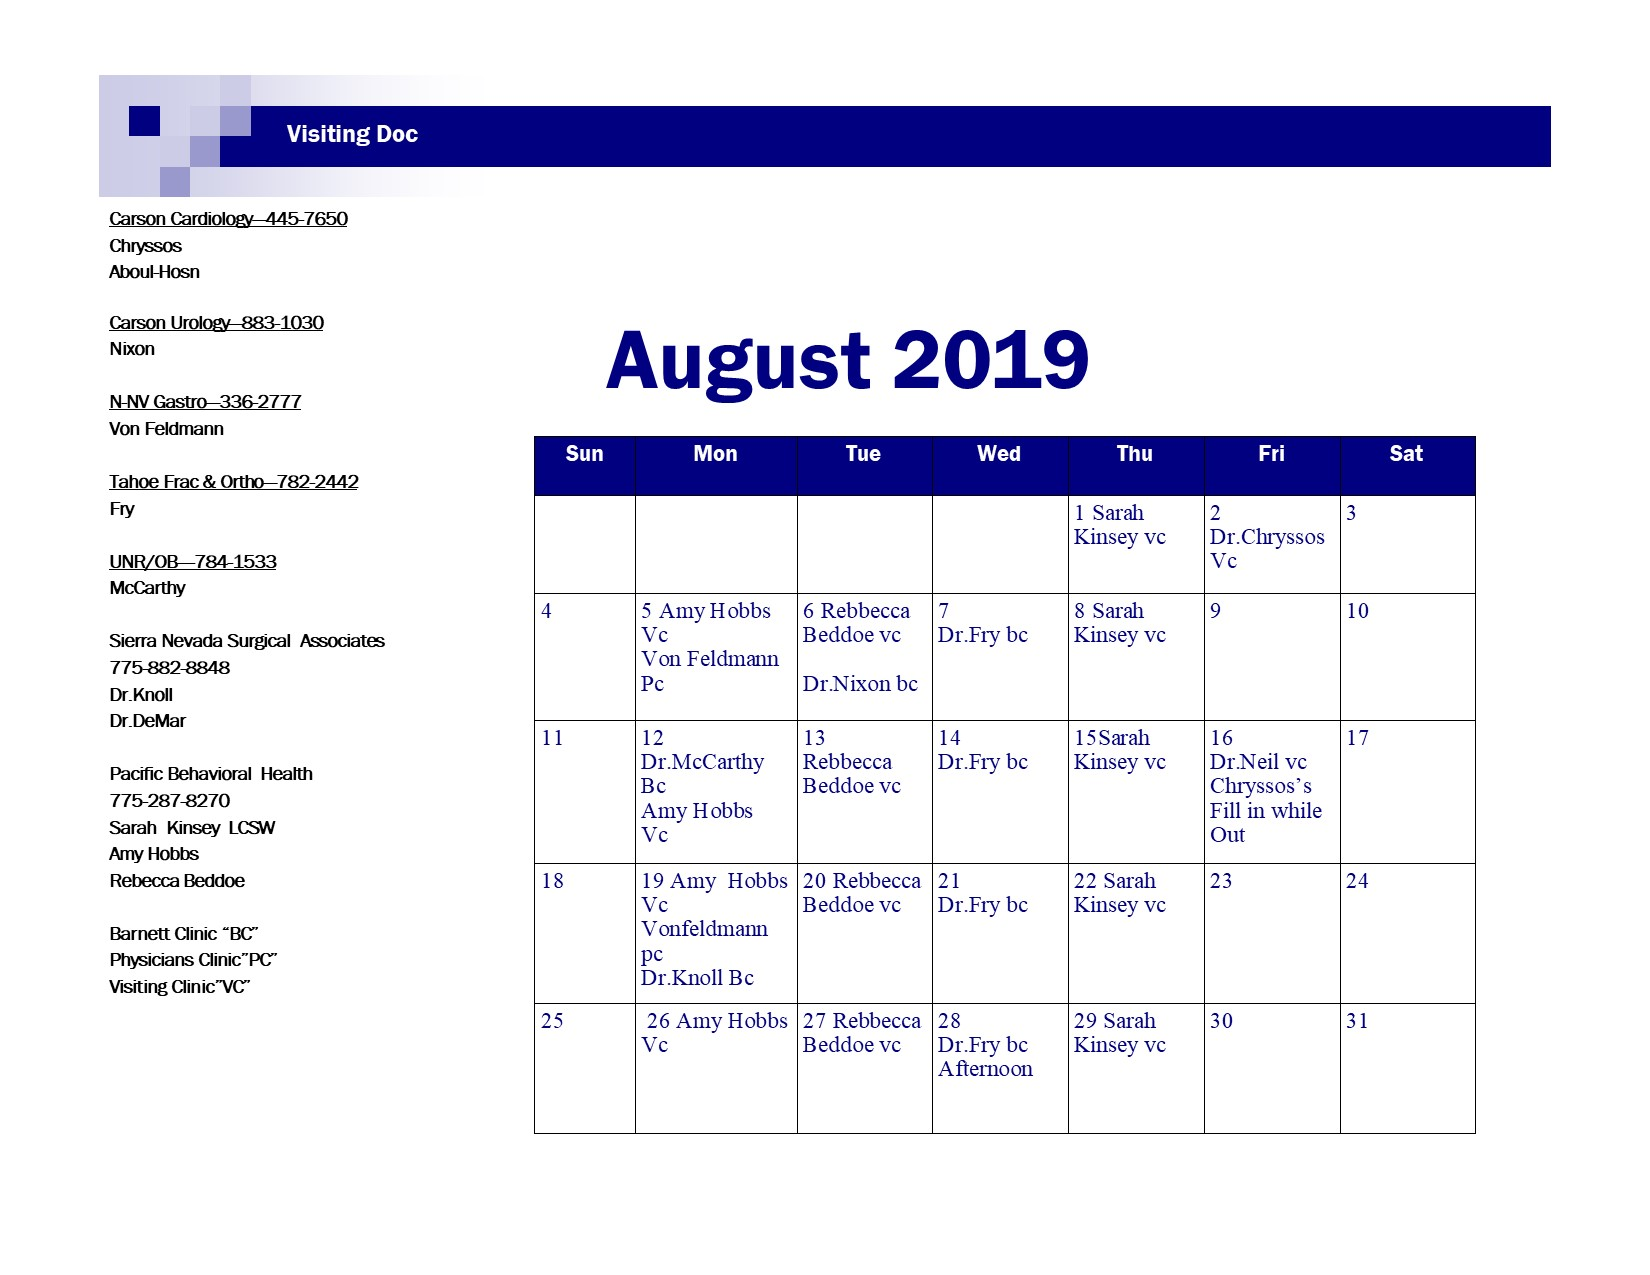 August 2019 Visiting Docweb site